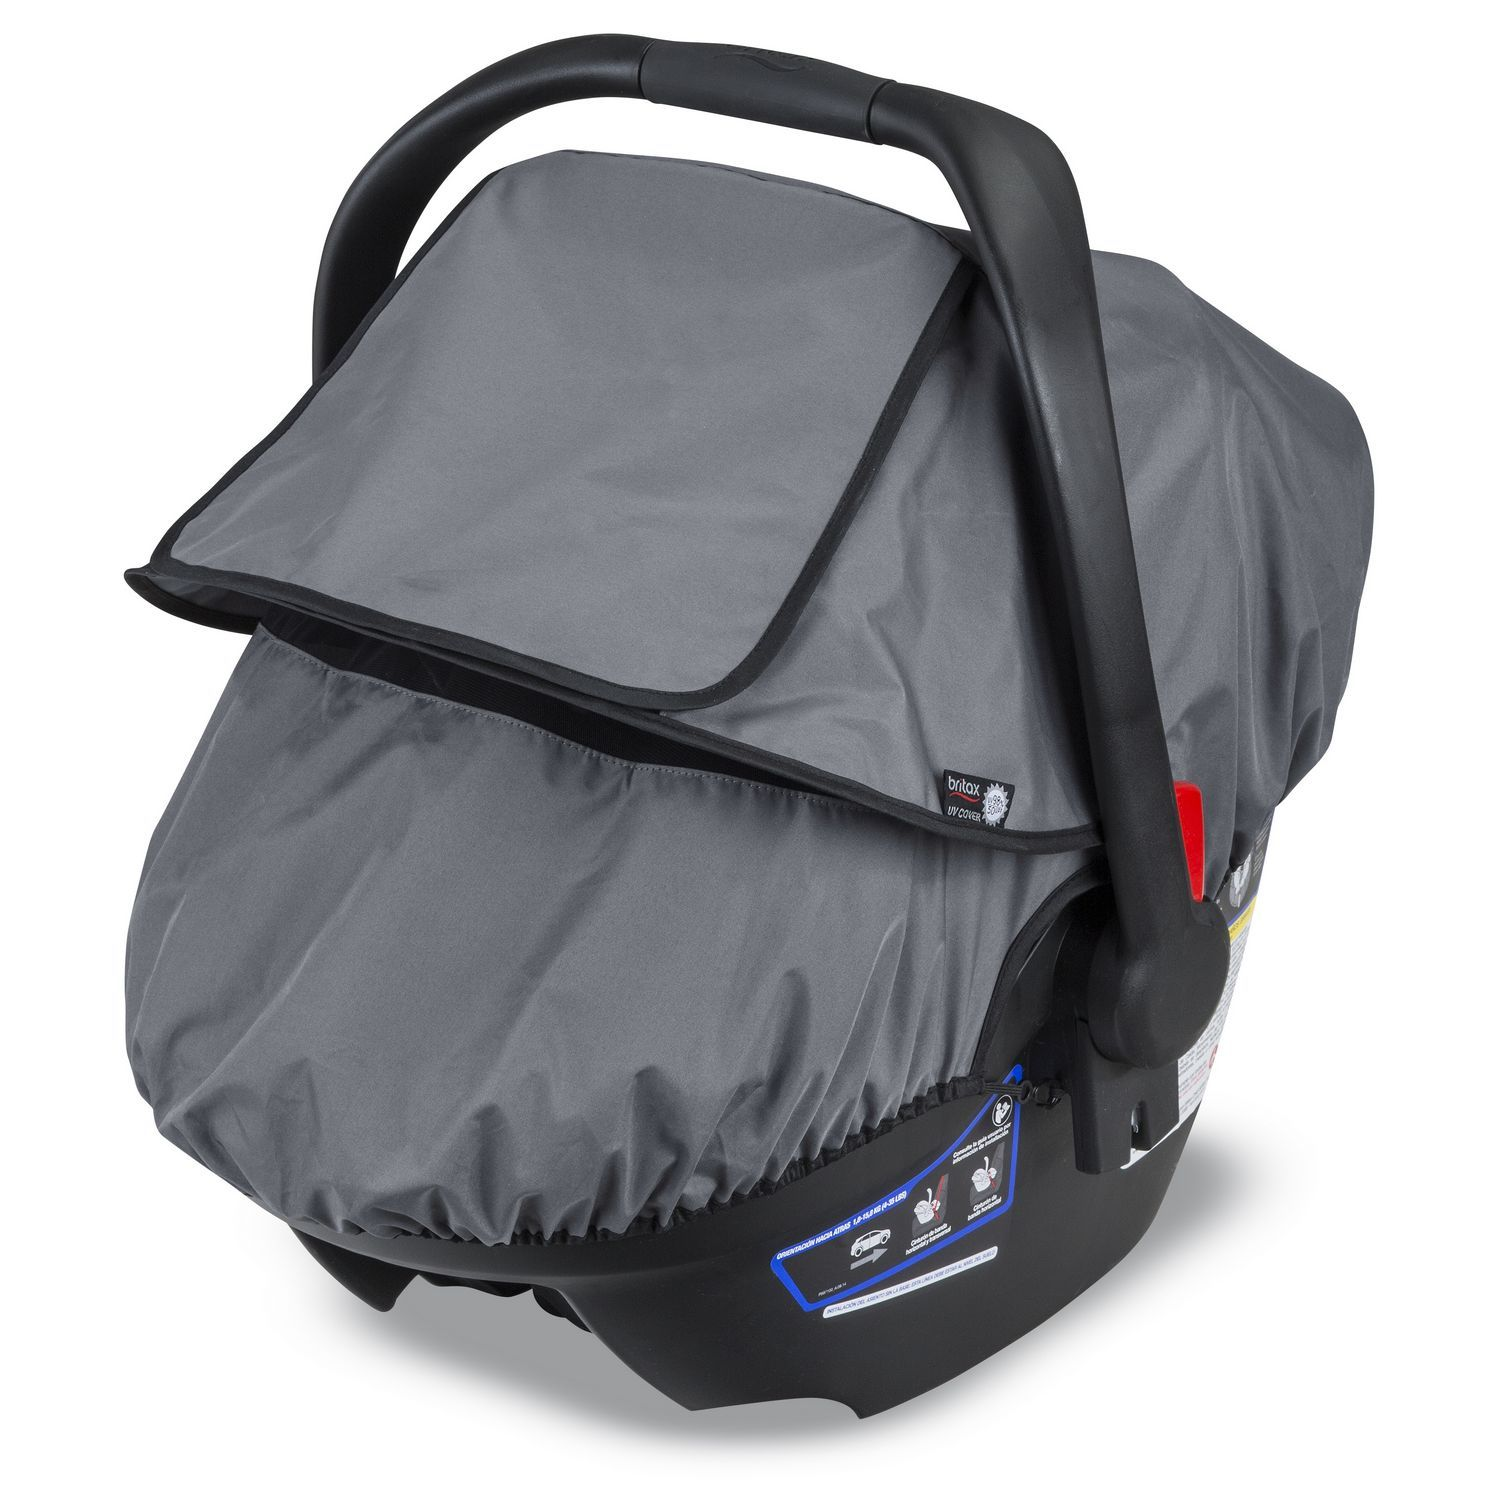 Britax B-Covered All-Weather Car Seat Cover  sc 1 st  Walmart & Britax B-Covered All-Weather Car Seat Cover - Walmart.com